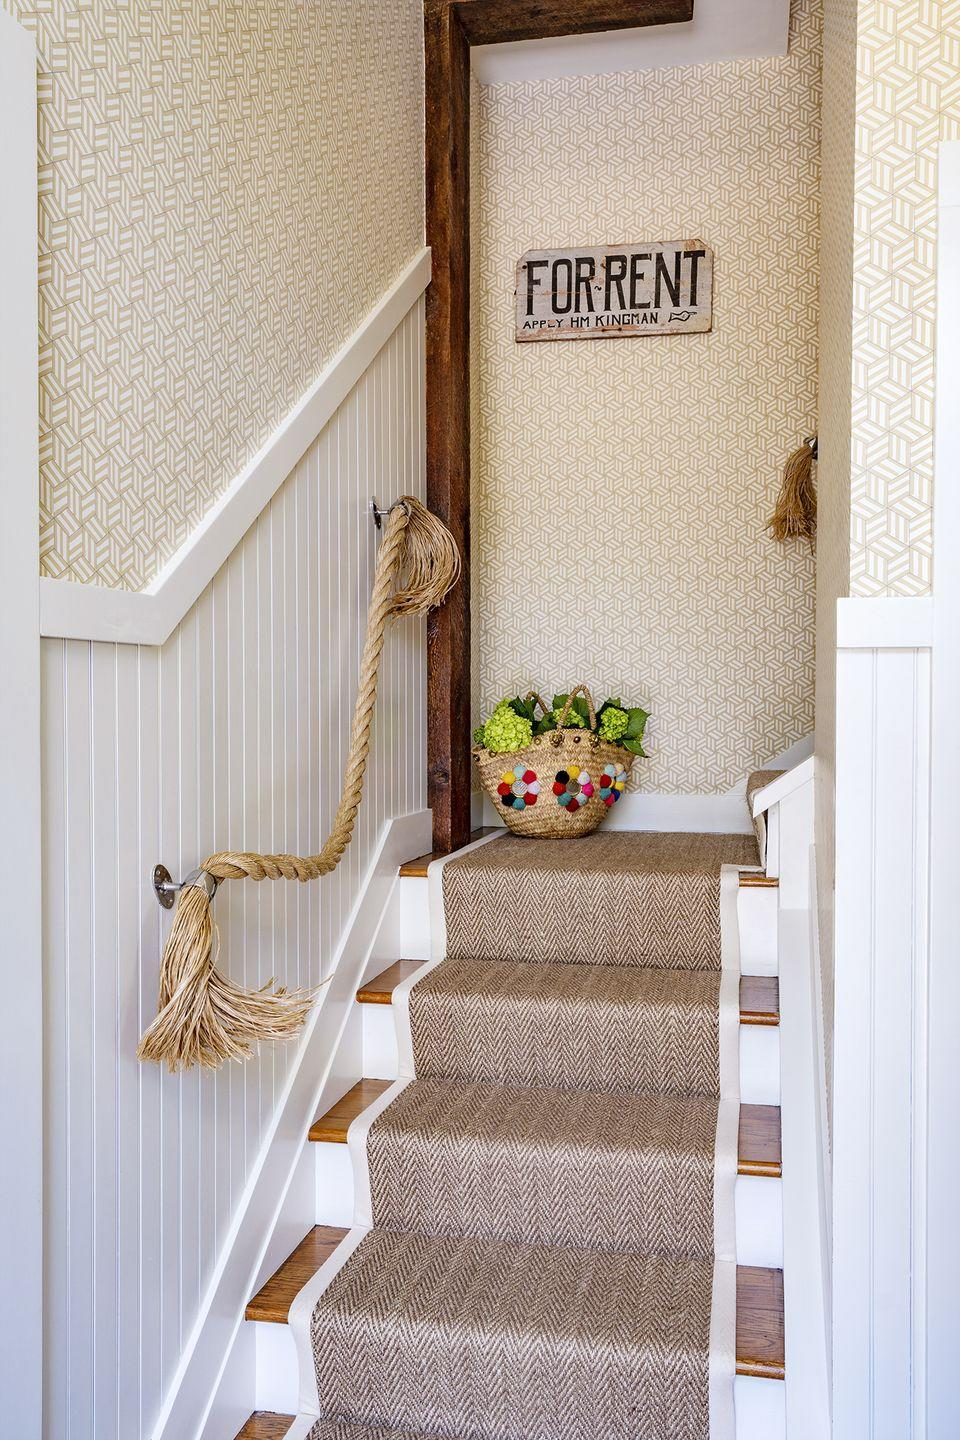 <p>Trade out a standard wooden bannister for jute or Pro-Manila rope to match your home's nautical aesthetic. After anchoring brackets to the wall or individual posts, secure the rope from the top to the bottom of the stairs. Then unravel both ends to create a more relaxed look. </p>